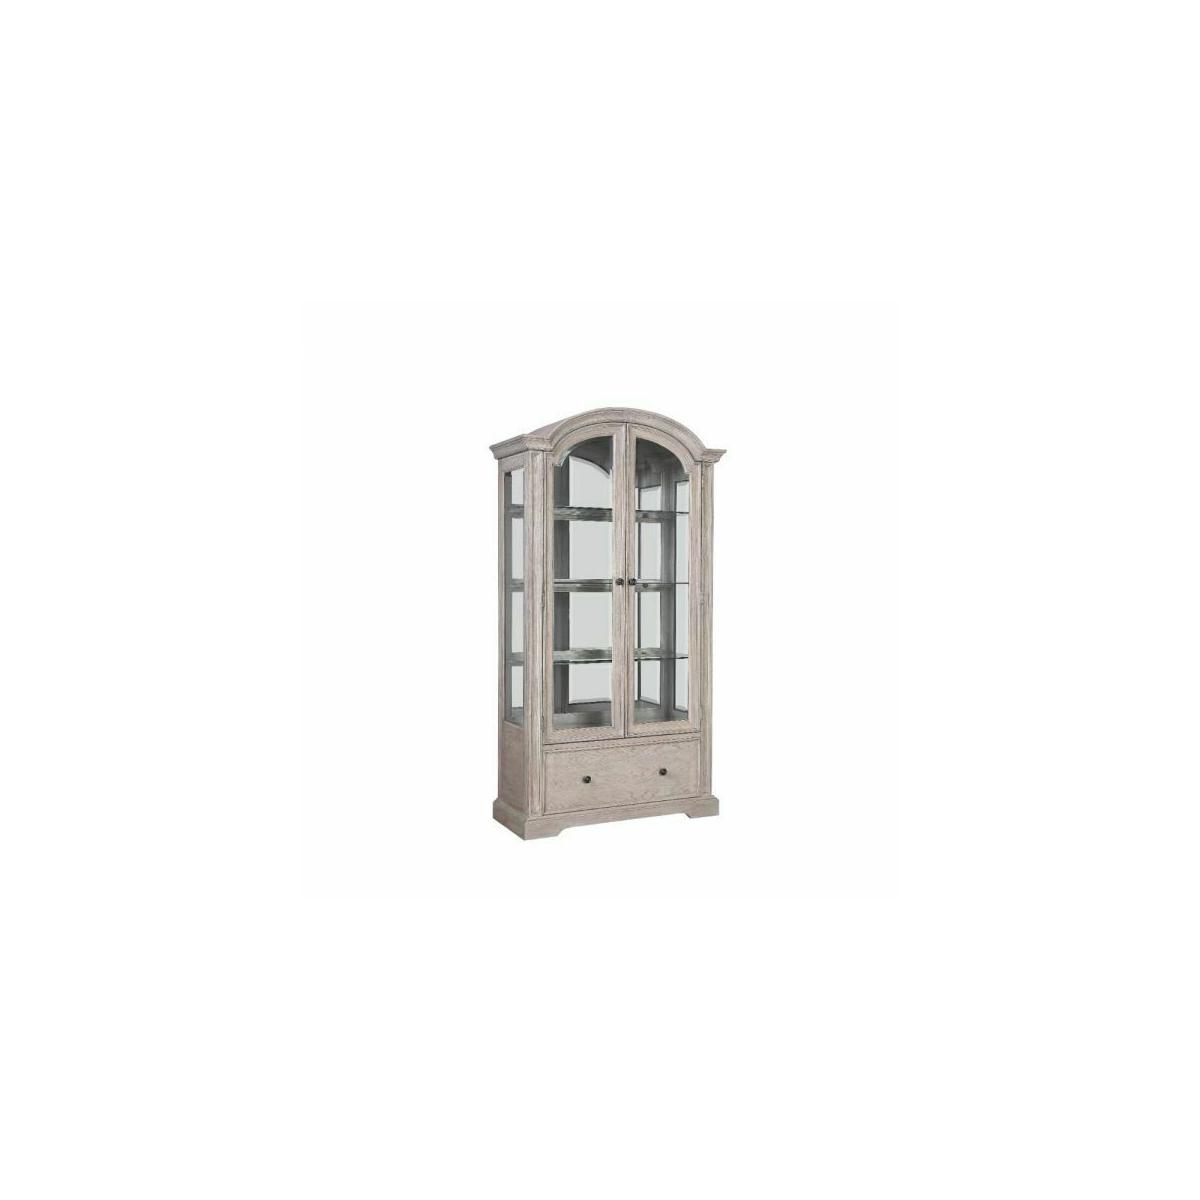 ACME Wynsor Curio Cabinet - 67535 - Traditional - Wood (Poplar), Wood Veneer (Oak), MDF - Antique Champagne